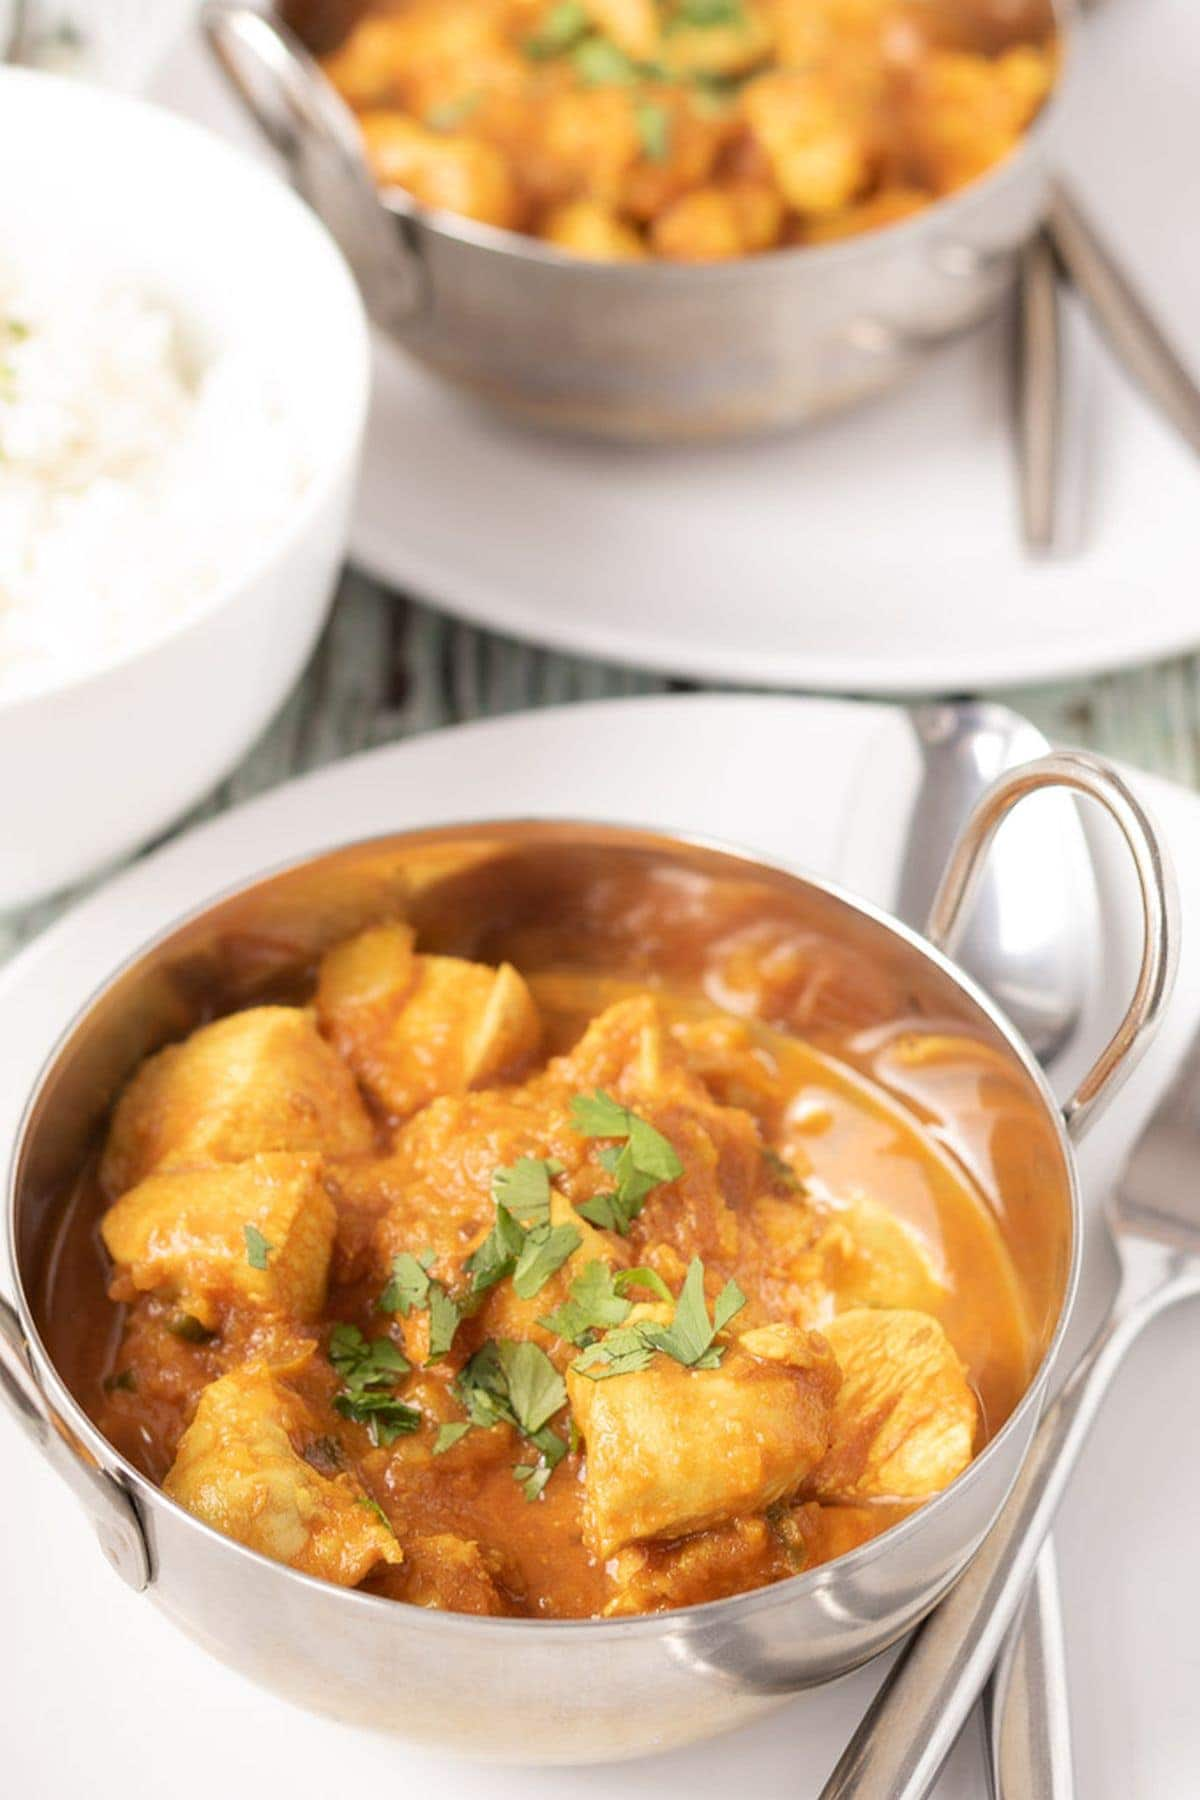 Two balti dishes sitting on plates served with chicken sharabi curry in. Knife and fork to the side and bowl of rice in between.